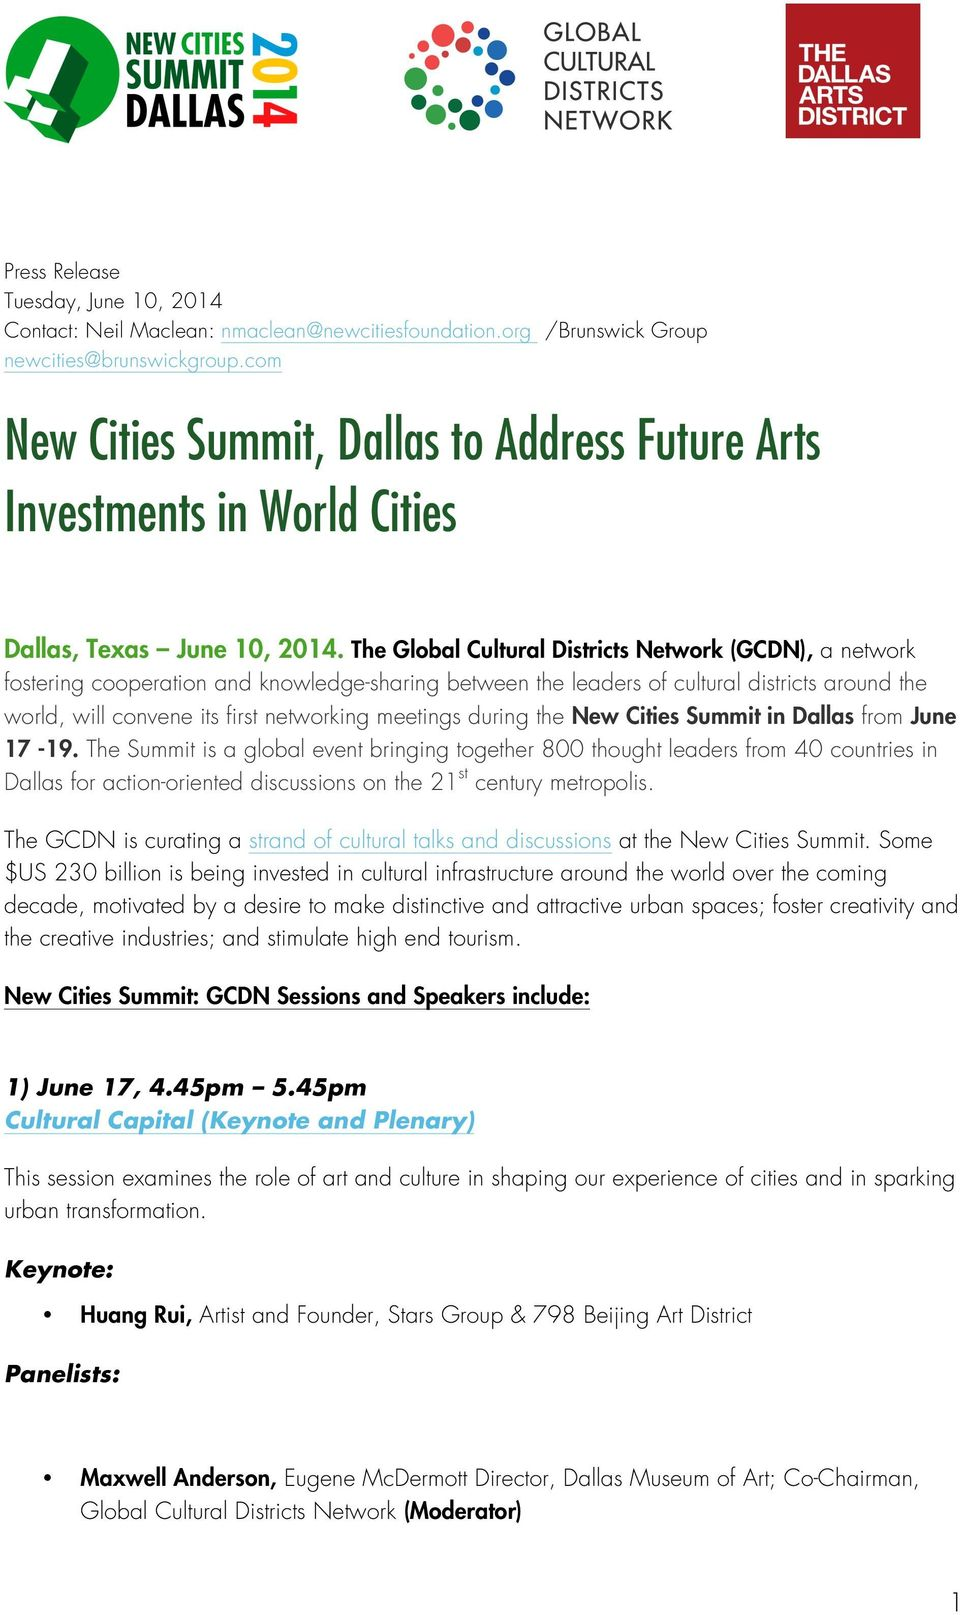 The Global Cultural Districts Network (GCDN), a network fostering cooperation and knowledge-sharing between the leaders of cultural districts around the world, will convene its first networking